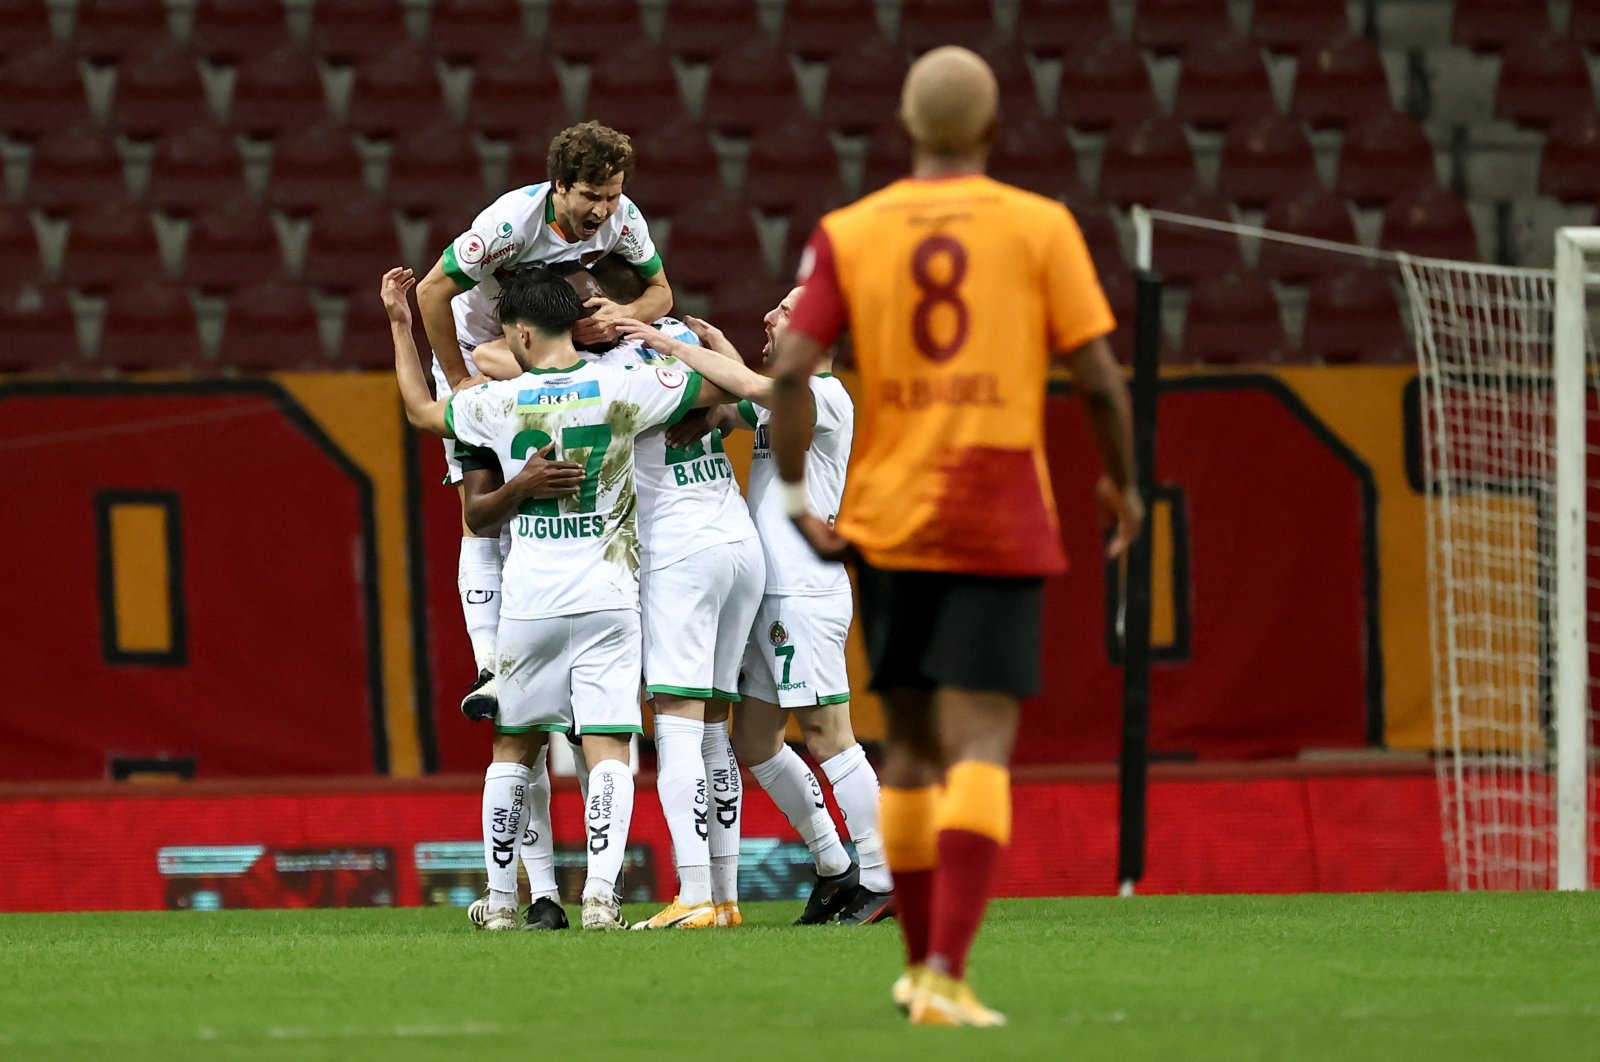 Alanyaspor players celebrate after a goal while Galatasaray's Ryan Babel walks during the Turkish Cup match at the Turk Telekom Stadium in Istanbul on Feb. 10, 2021 (AA Photo)